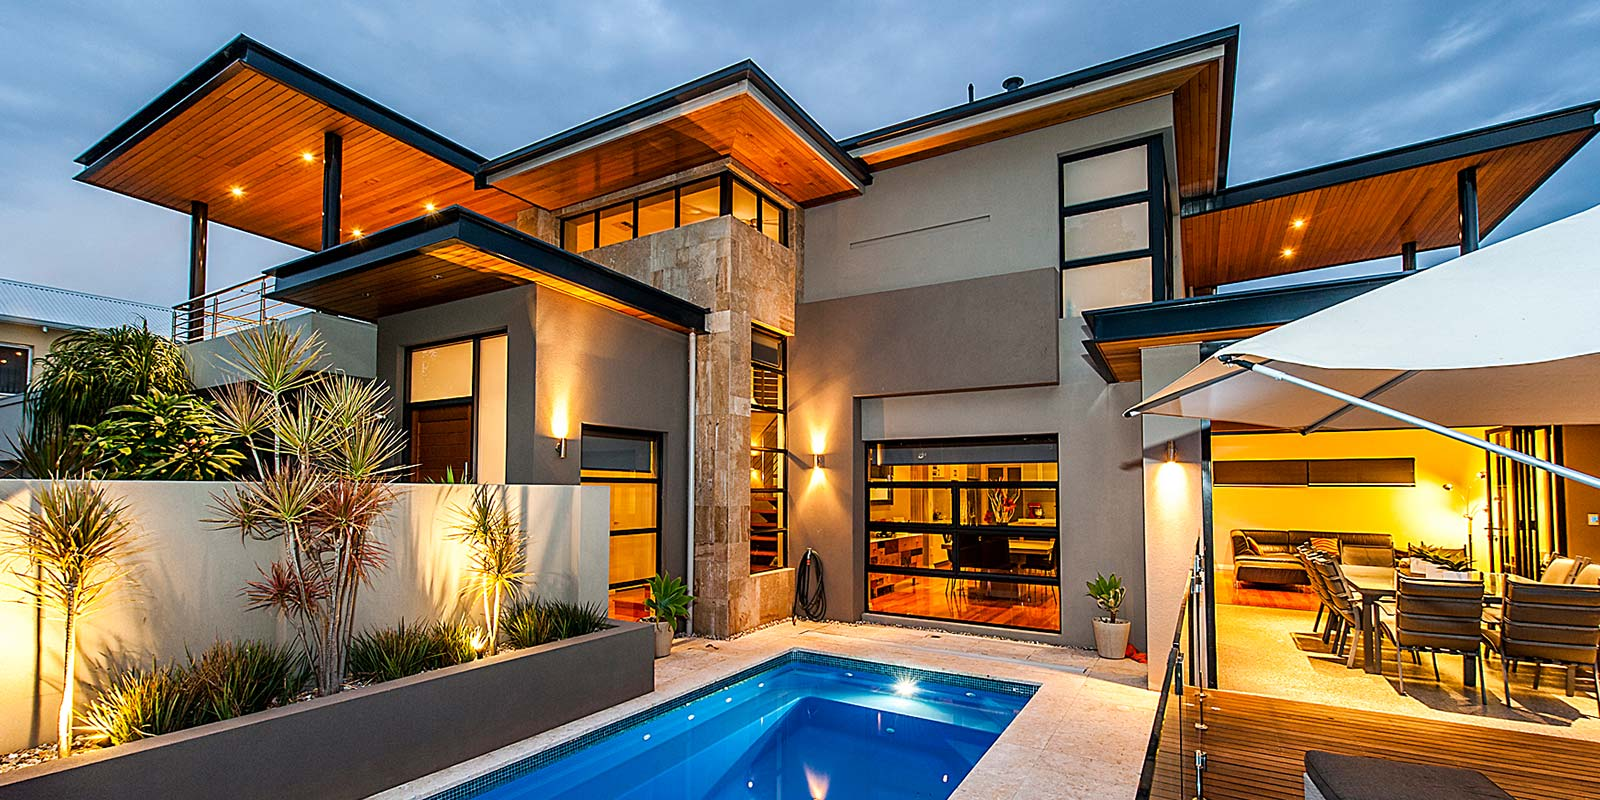 Luxury Home Design Pointers for Narrow Lots